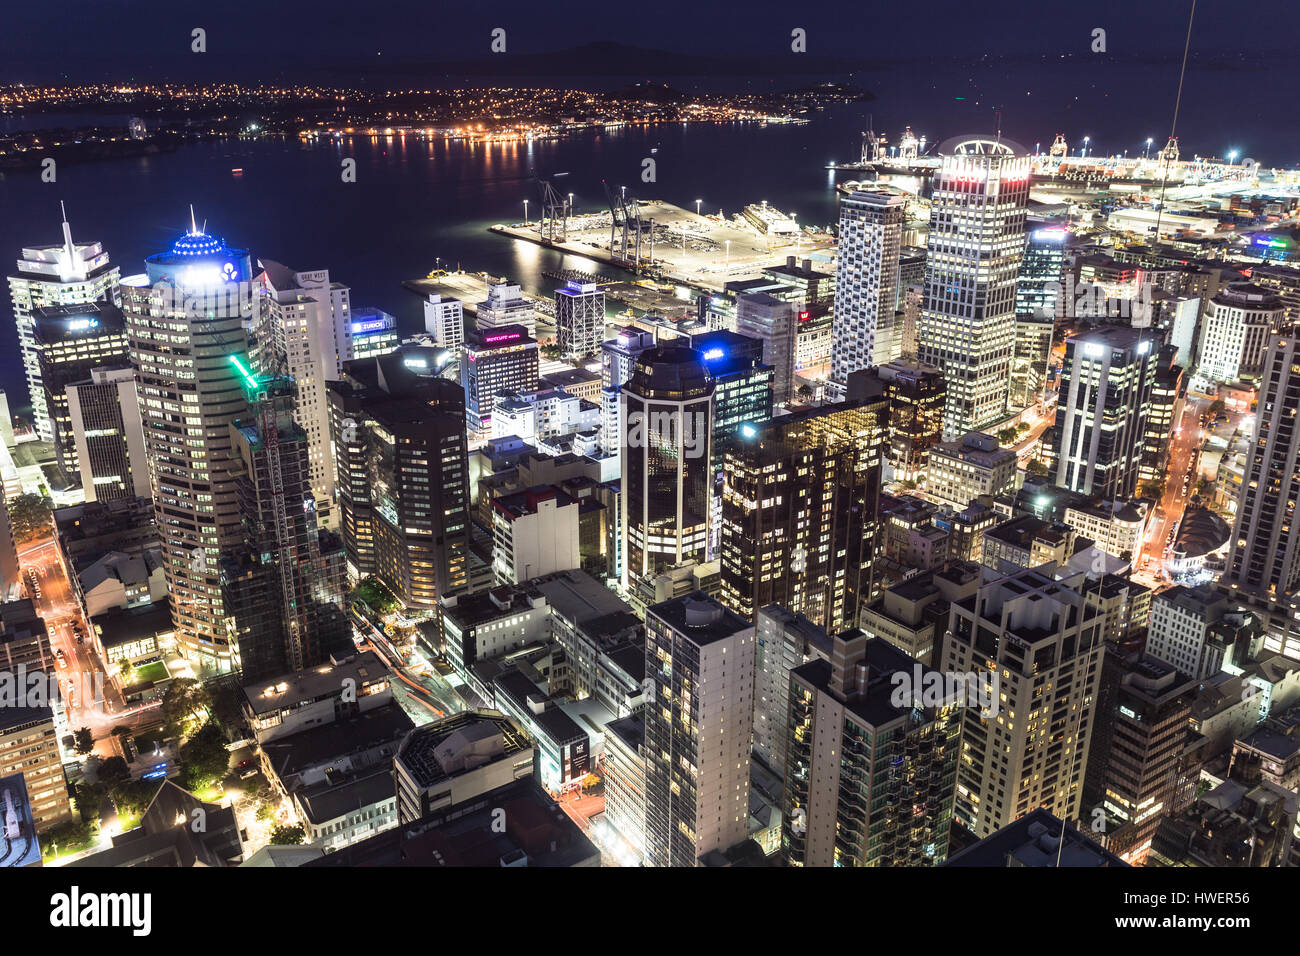 AUCKLAND, NEW ZEALAND - MARCH 1, 2017: An aerial view of Auckland central business district at night with the Hauraki - Stock Image